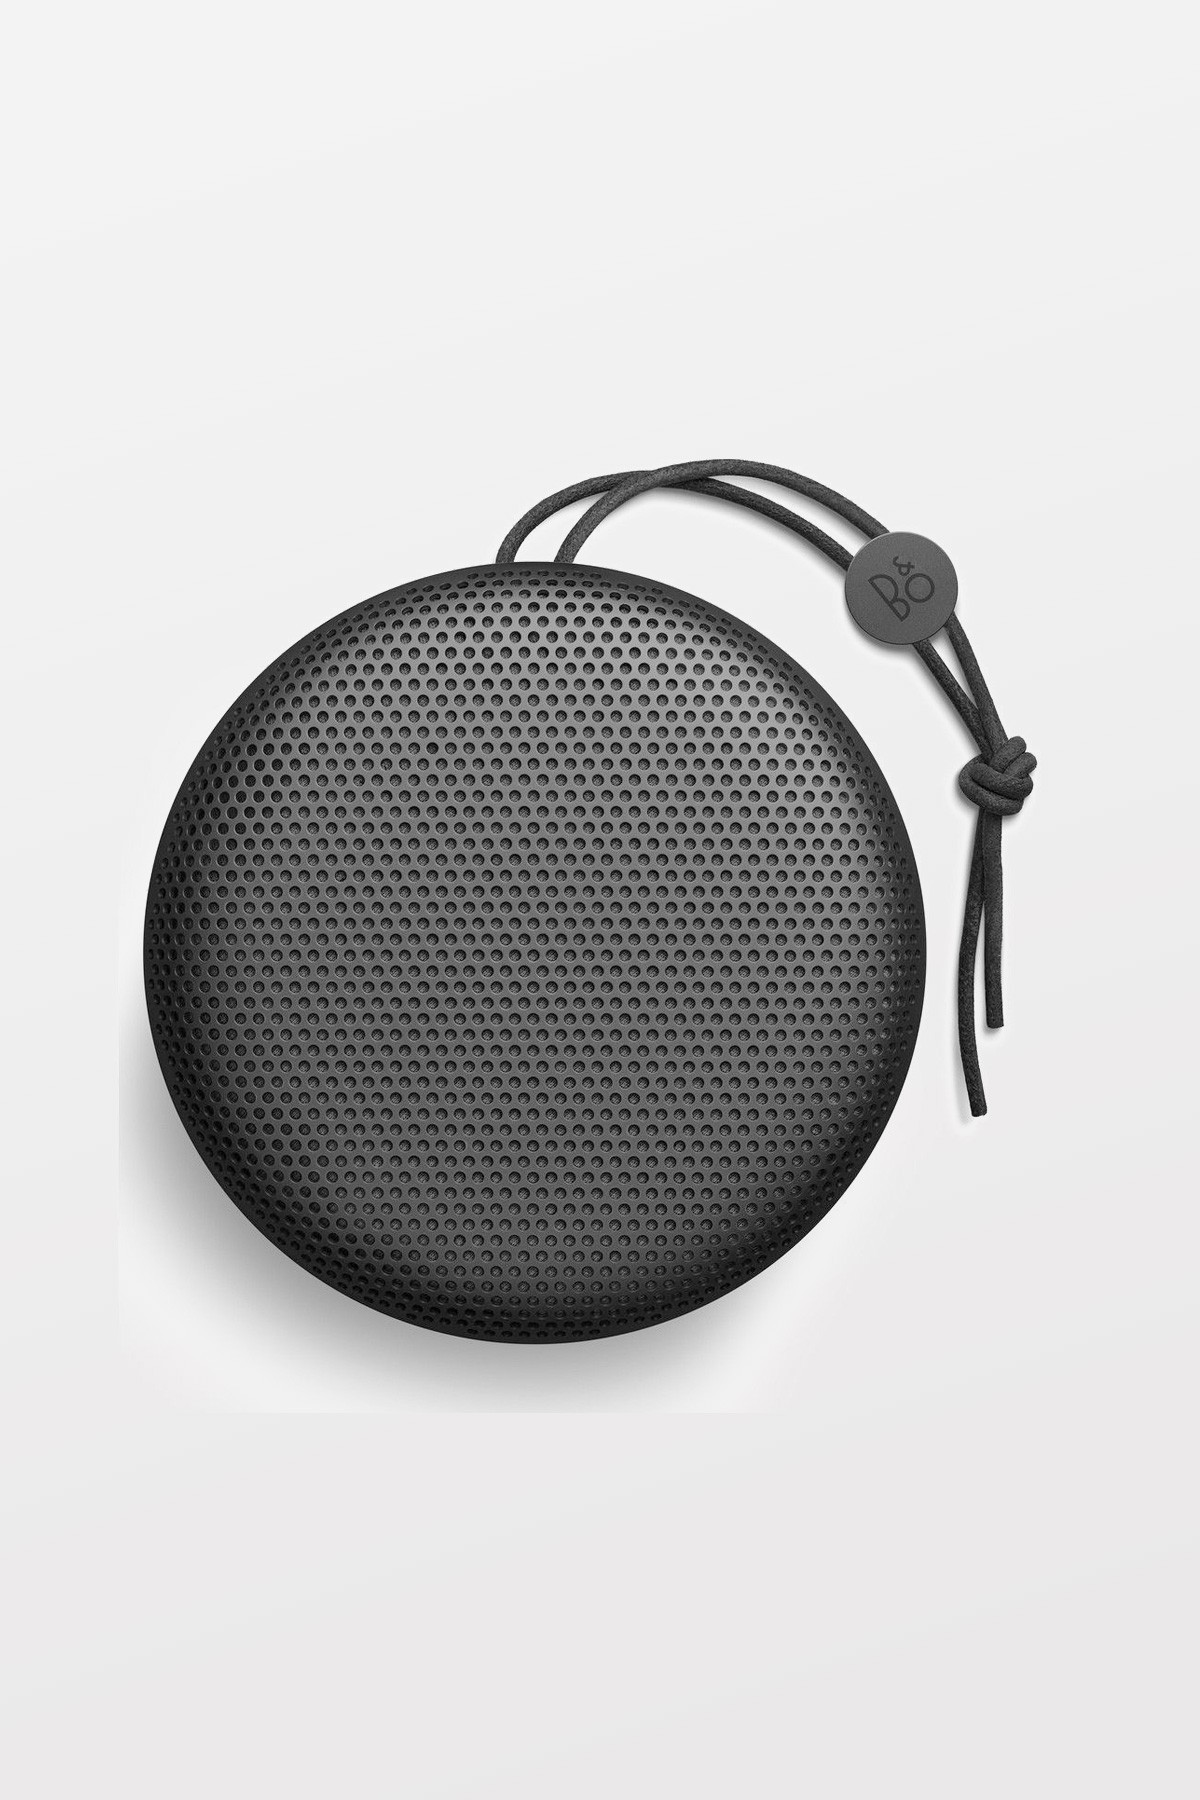 B&O Beoplay A1 Portable Bluetooth Speaker - Black